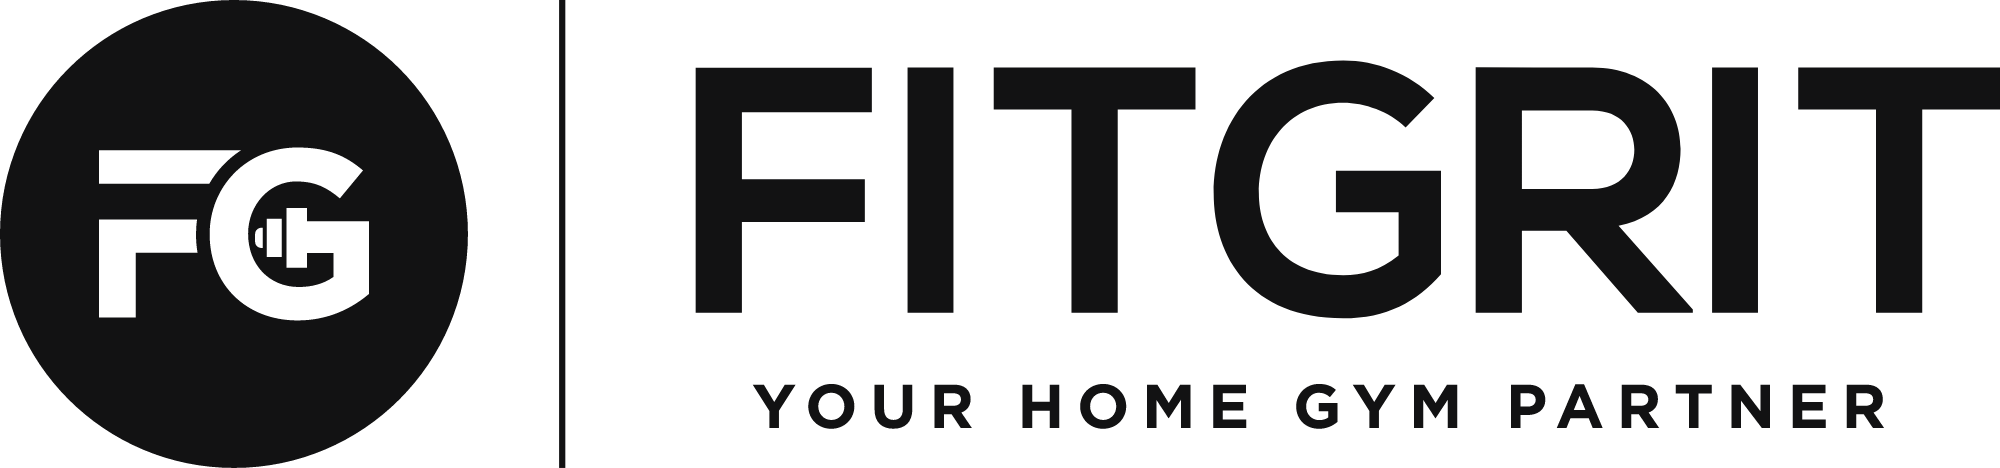 FitGrit by Cosmo Traders Inc.